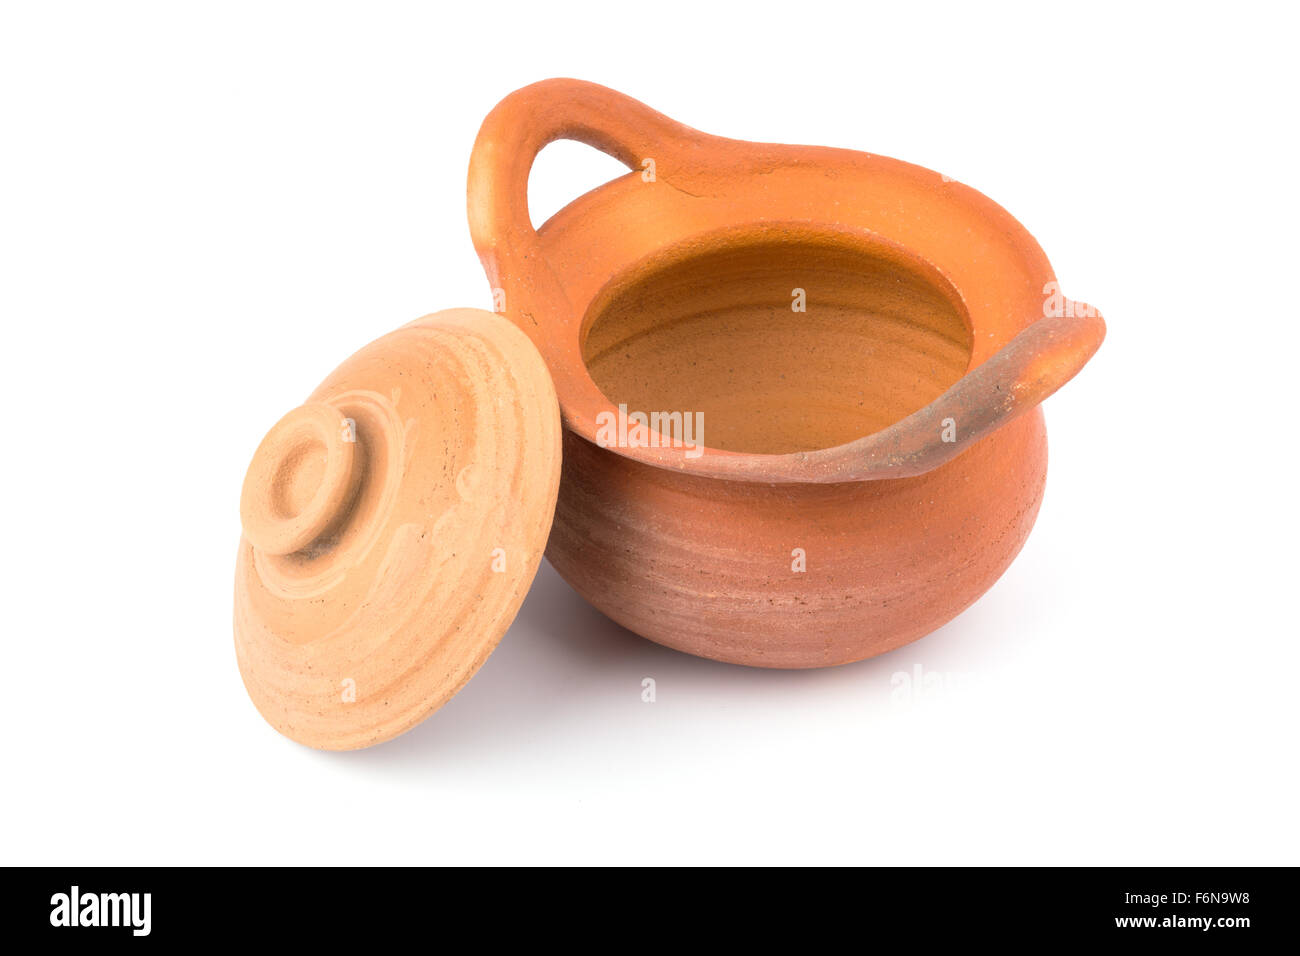 Clay pots are open on white background - Stock Image